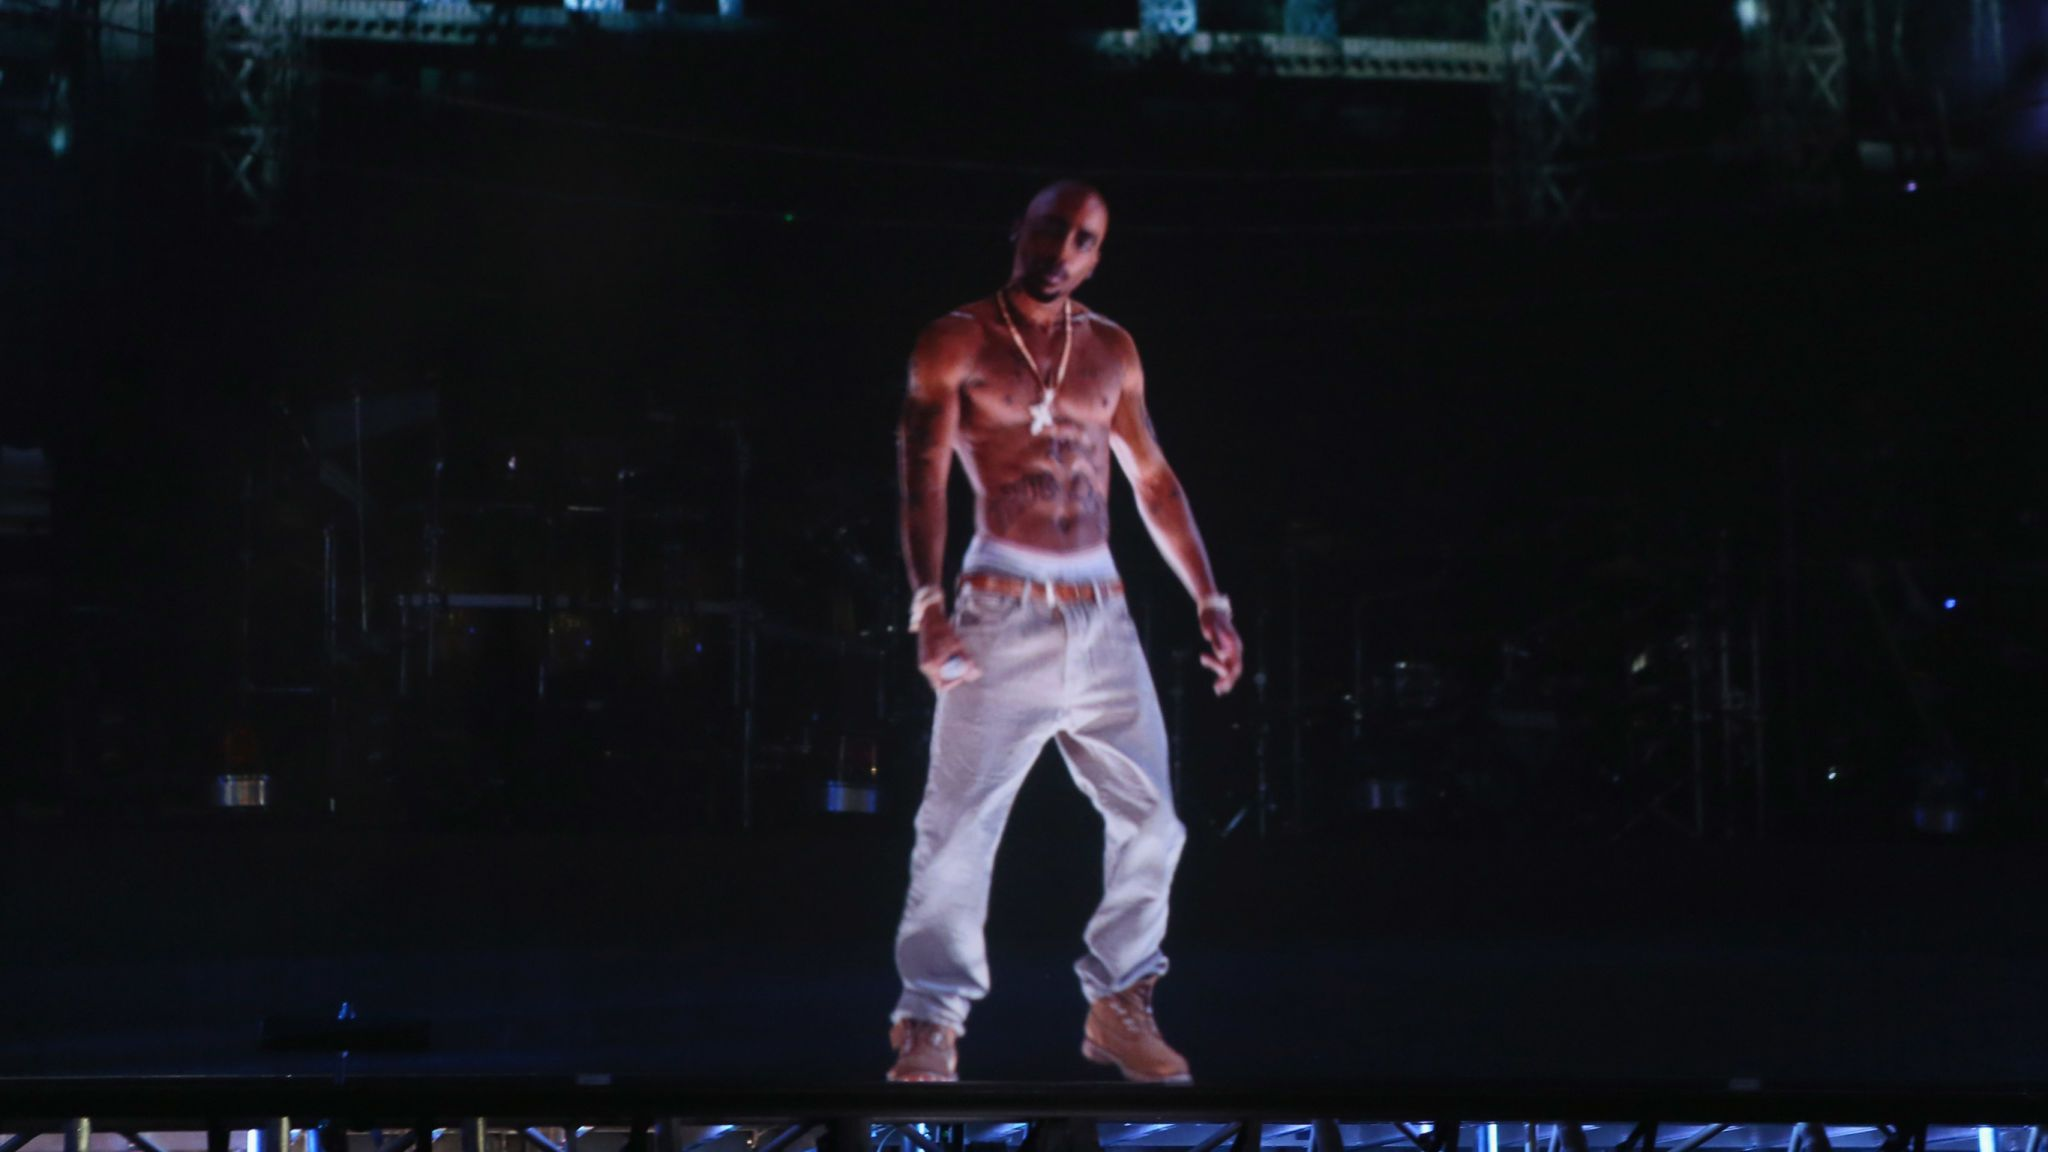 Tupac performed at Coachella as a hologram in 2012